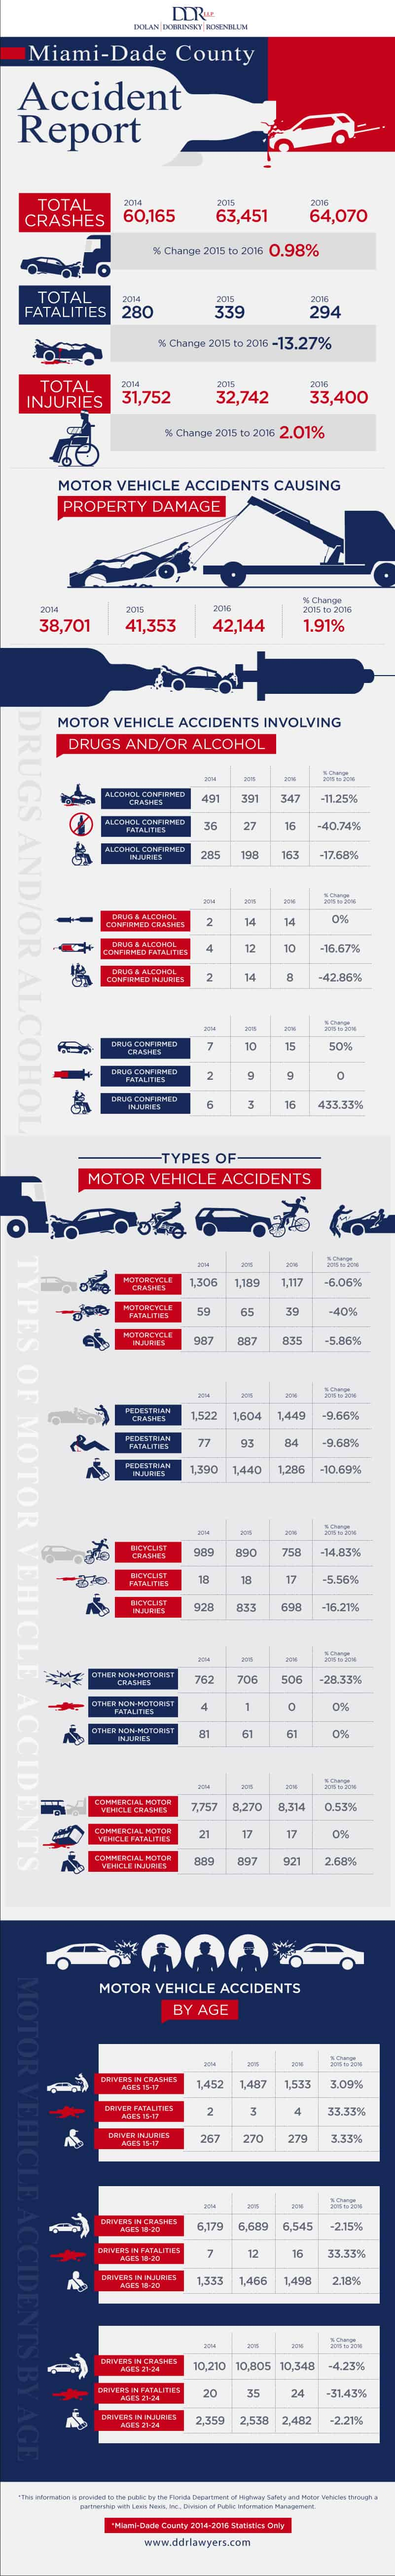 Miami Dade County Accident Report Infographic